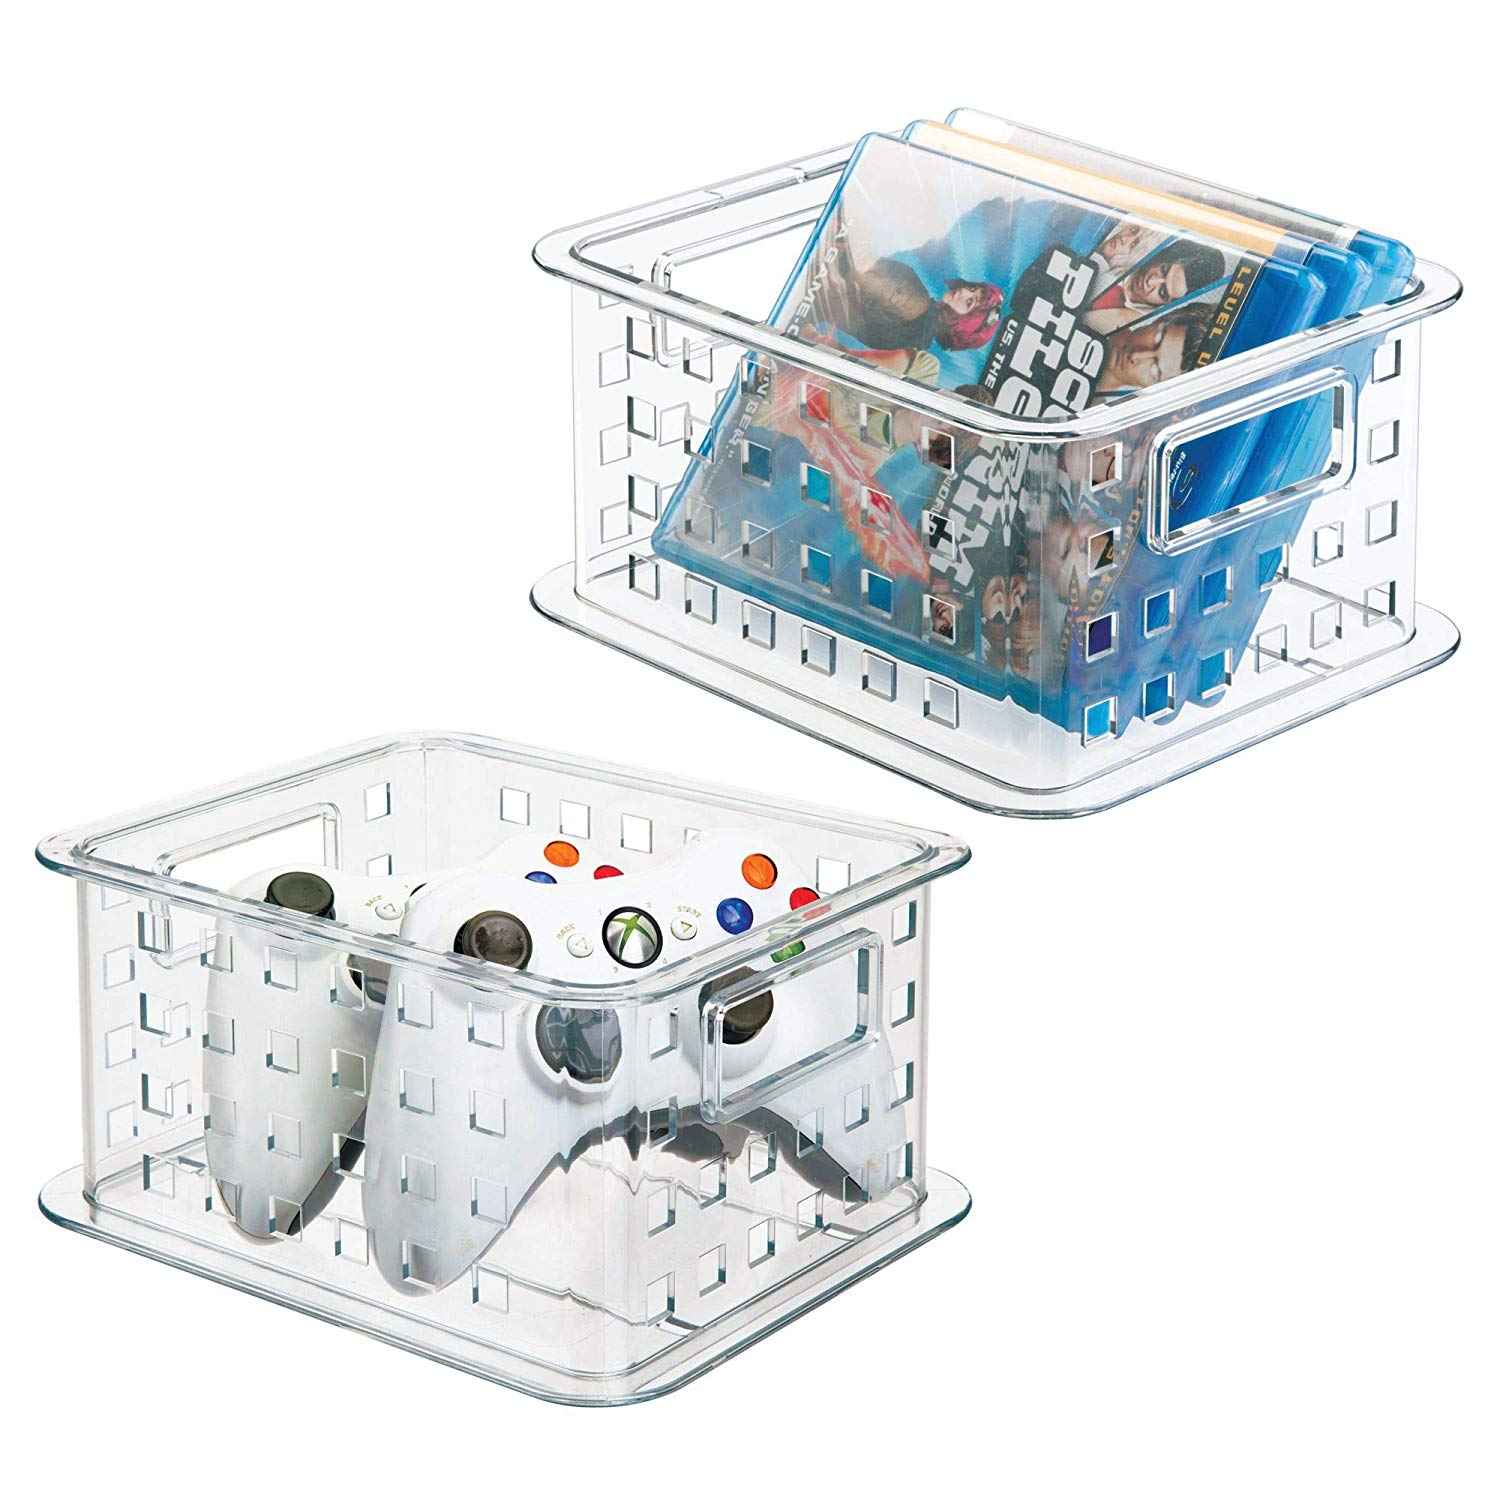 mDesign Plastic Stackable Household Storage Organizer Container Bin with Handles - for Media Consoles, Closets, Cabinets - Holds DVD's, Blu Ray, Video Games, Gaming Accessories - 2 Pack, Clear